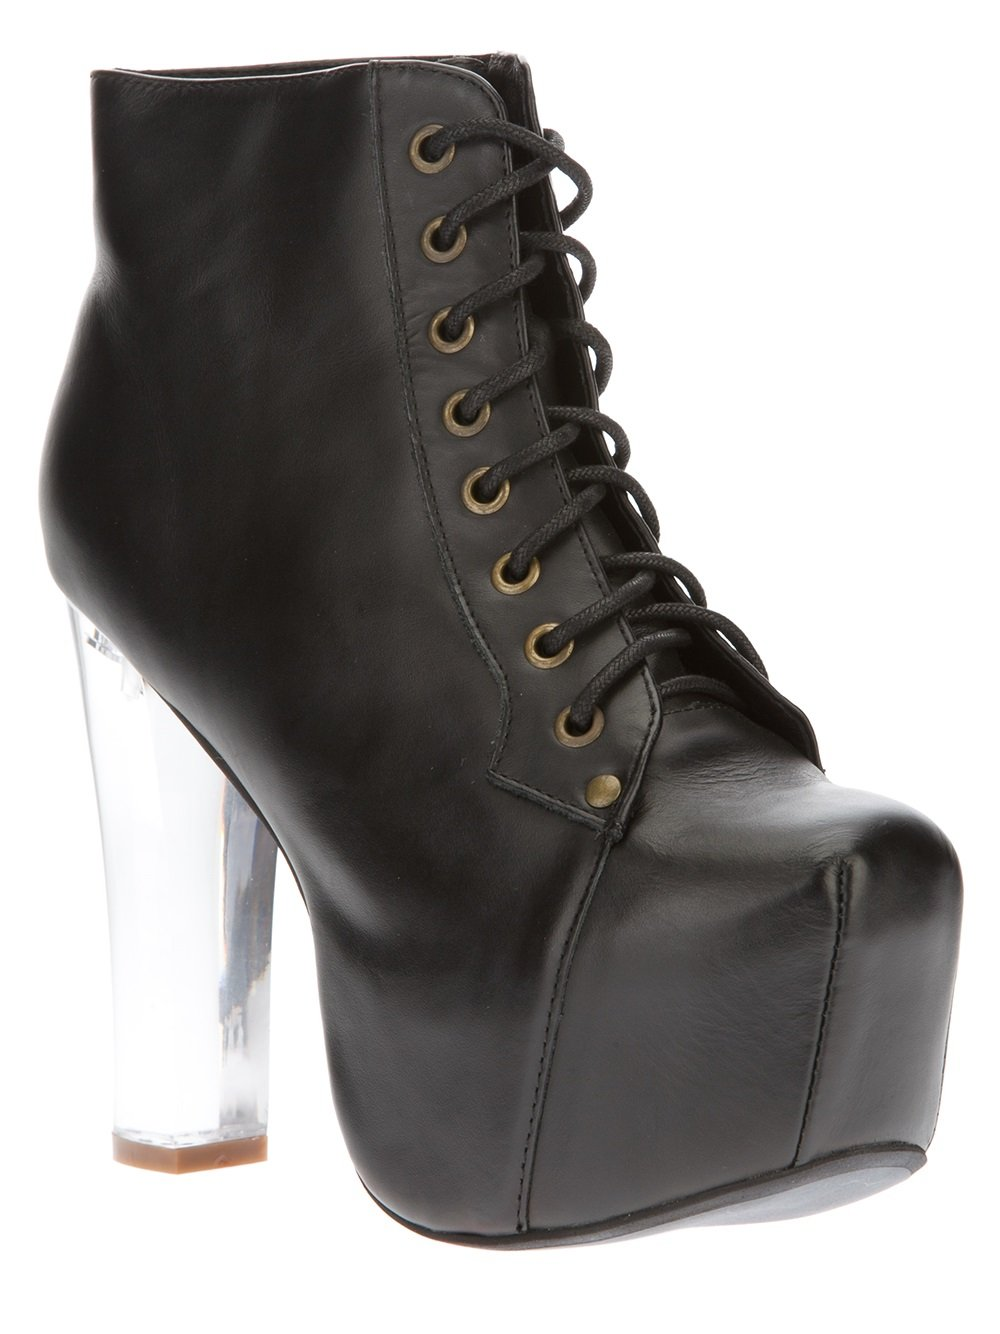 jeffrey campbell lita light laceup boot in black lyst. Black Bedroom Furniture Sets. Home Design Ideas